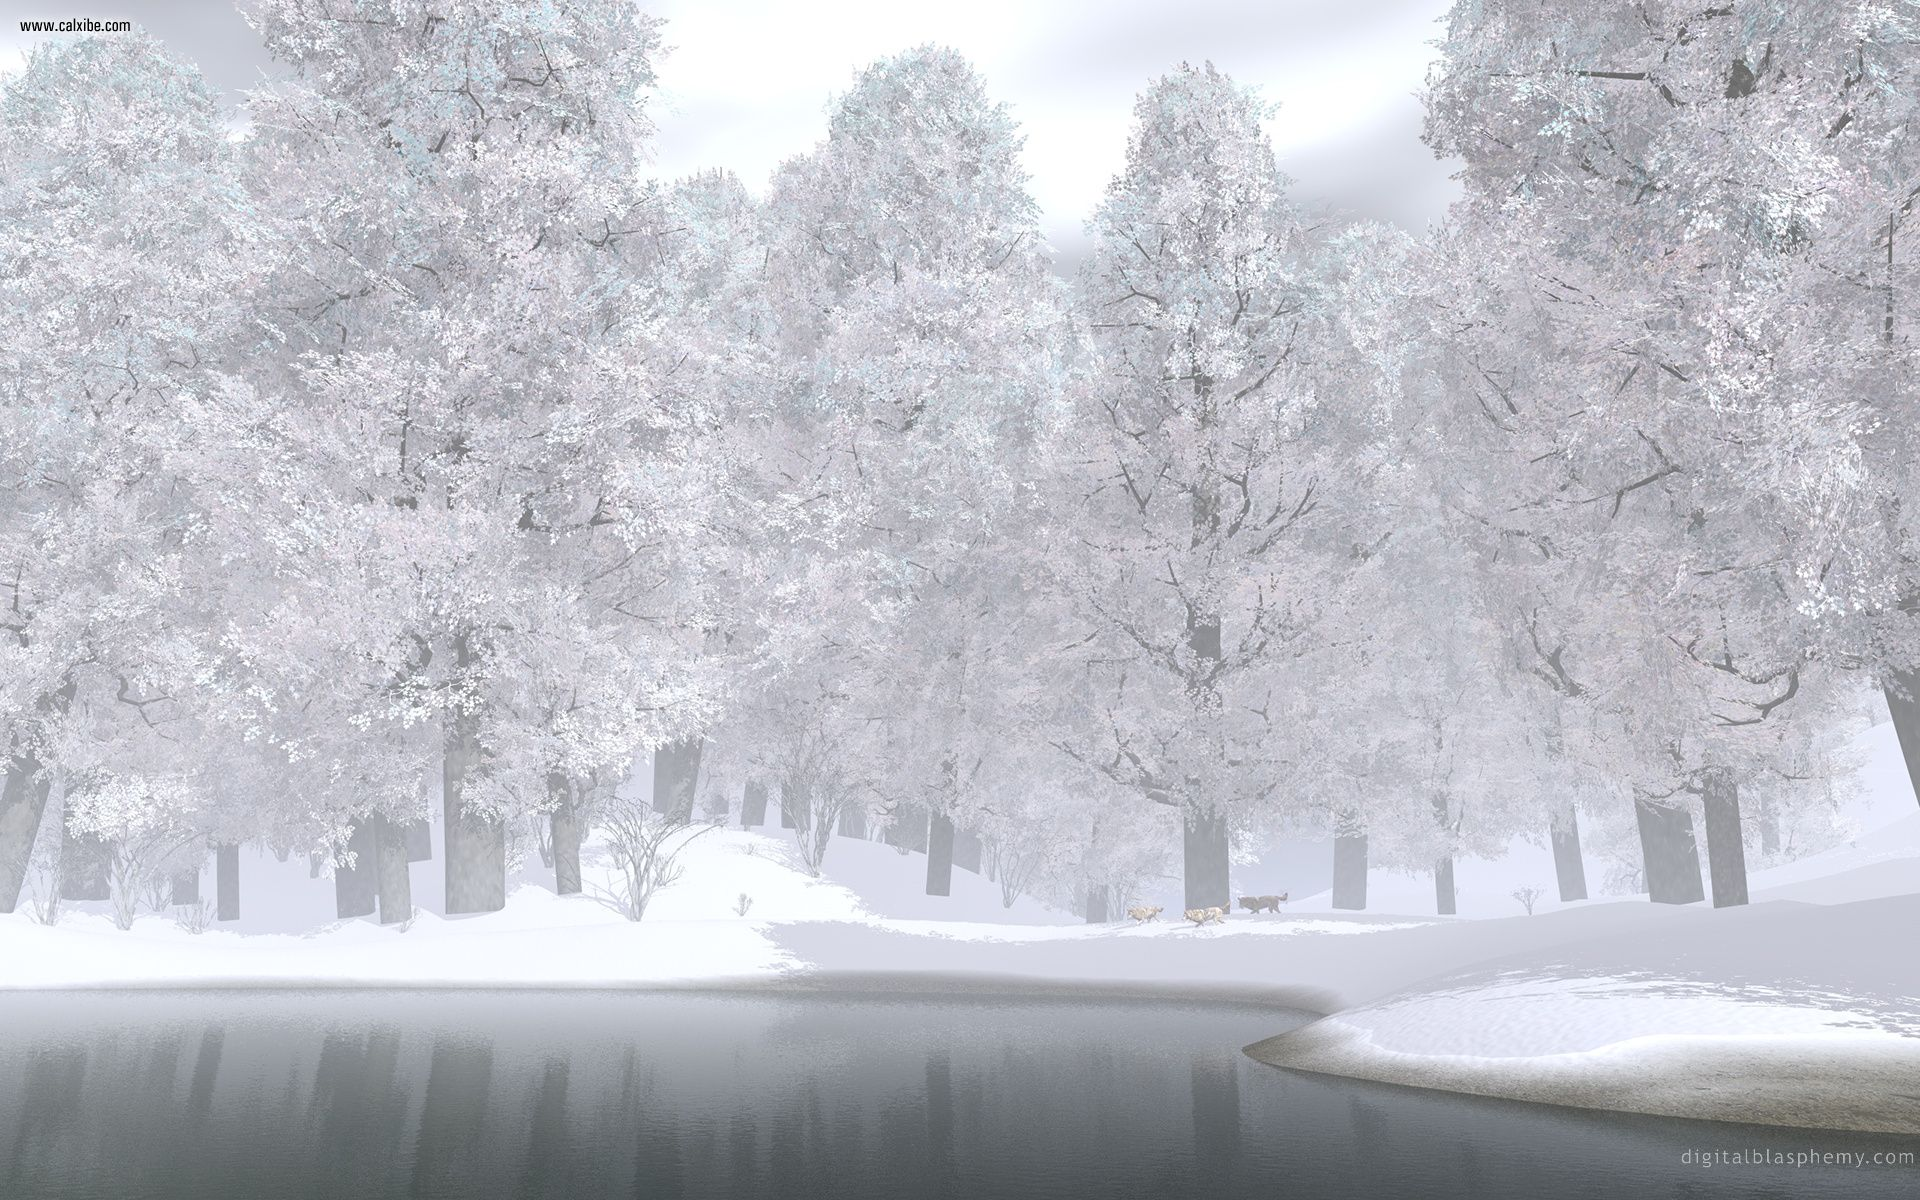 Snow Winter Wallpaper Photos Hd 8571 Wallpaper Walldiskpaper